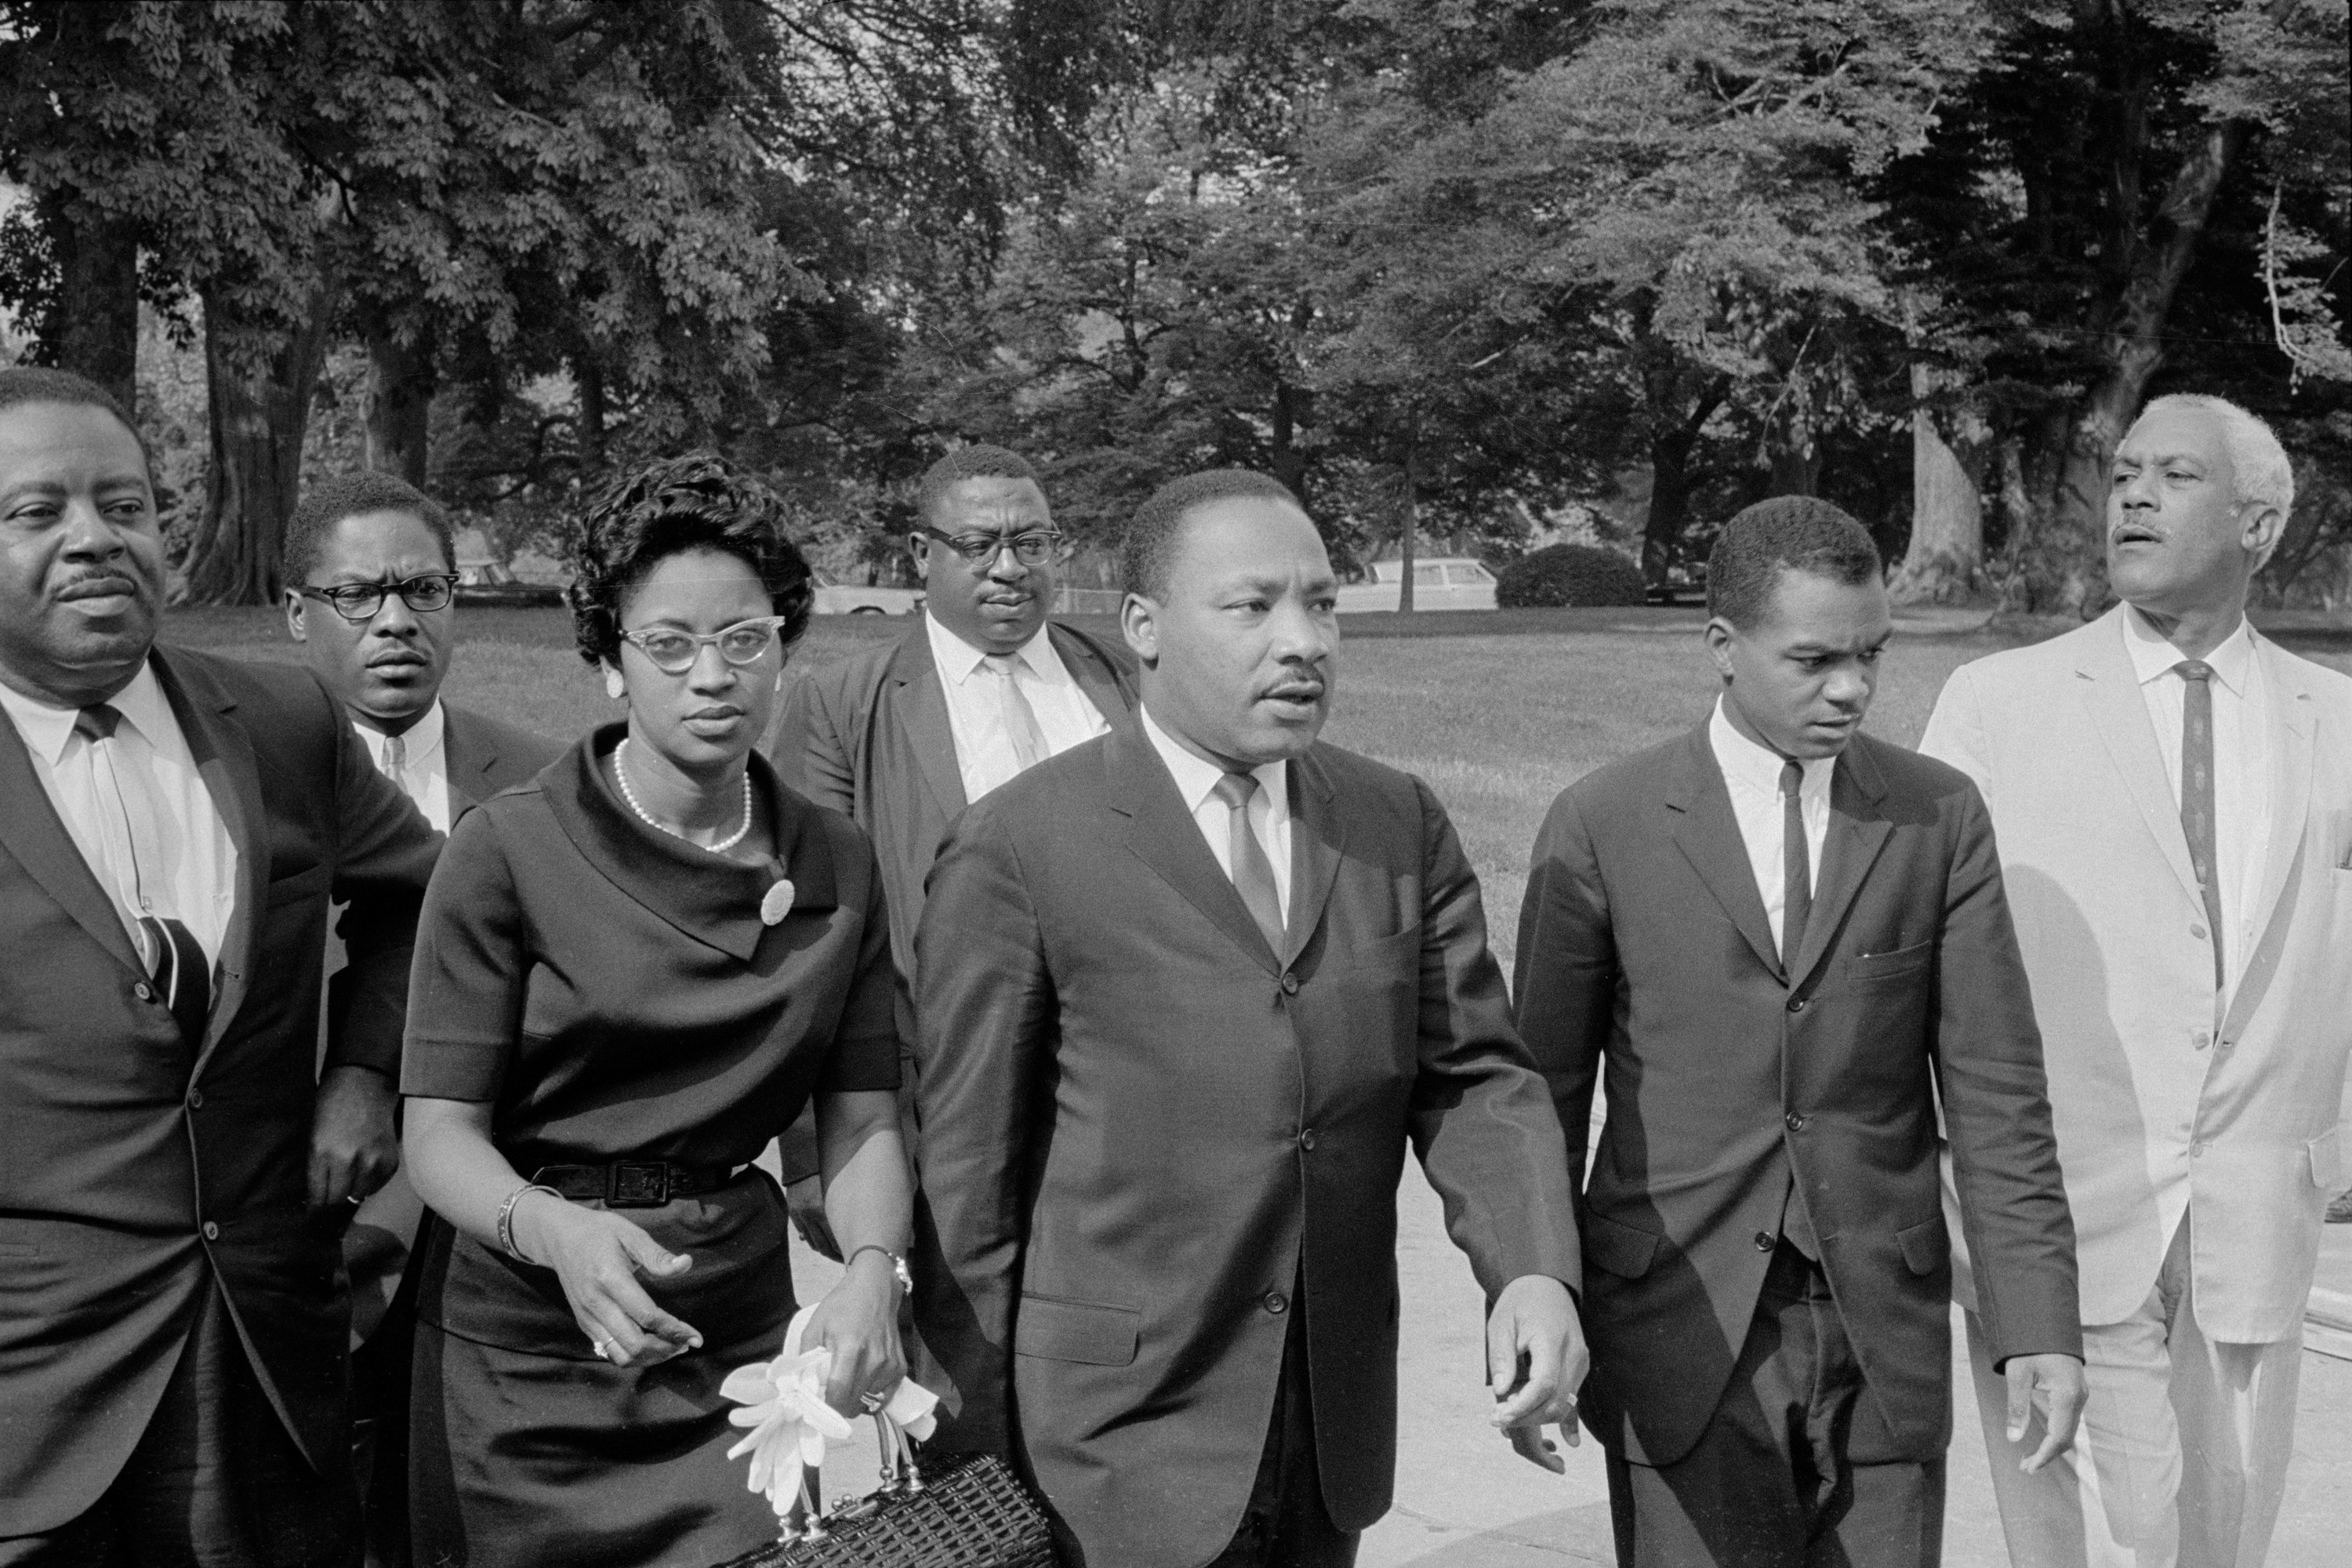 Martin Luther King Jr walks with others